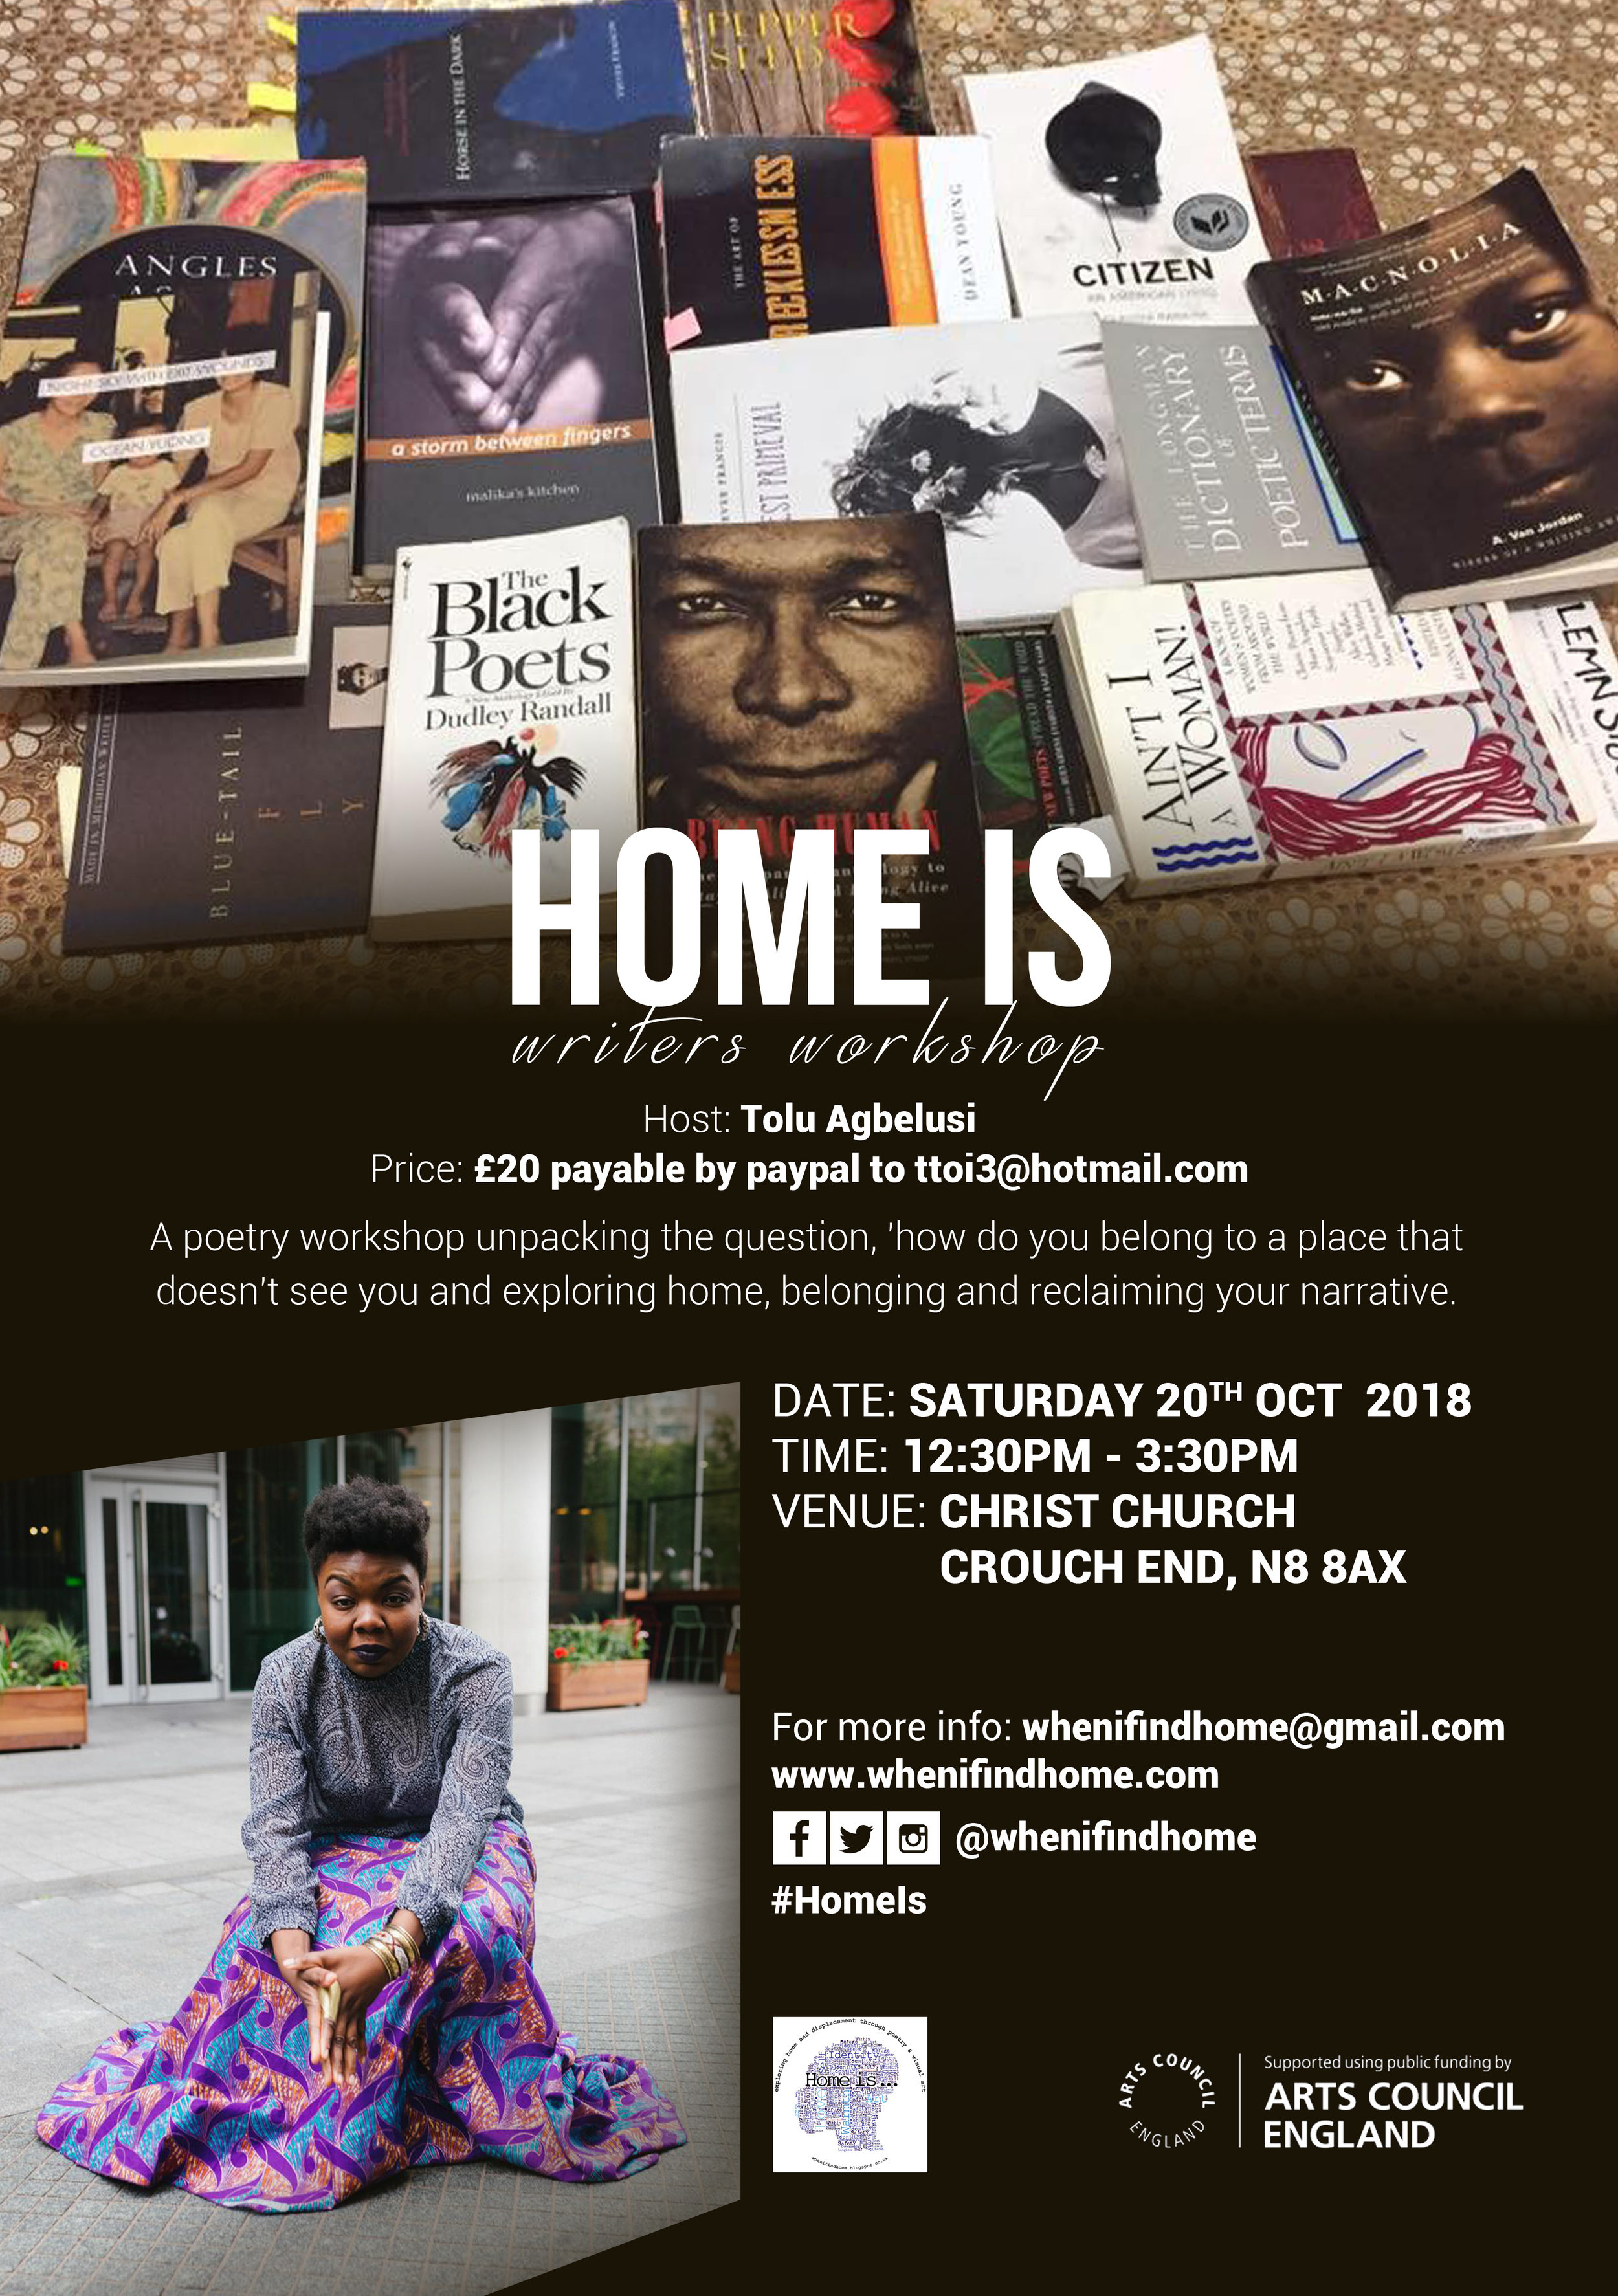 A poetry workshop unpacking the question, how do you belong to a place that doesn't see you and exploring home, belonging and reclaiming your narrative.  Whether you are curious, dabbling, seasoned—as long as you have an interest in writing, this is for you.  Fee: £20 via paypal to www.paypal.me/tagbelusi